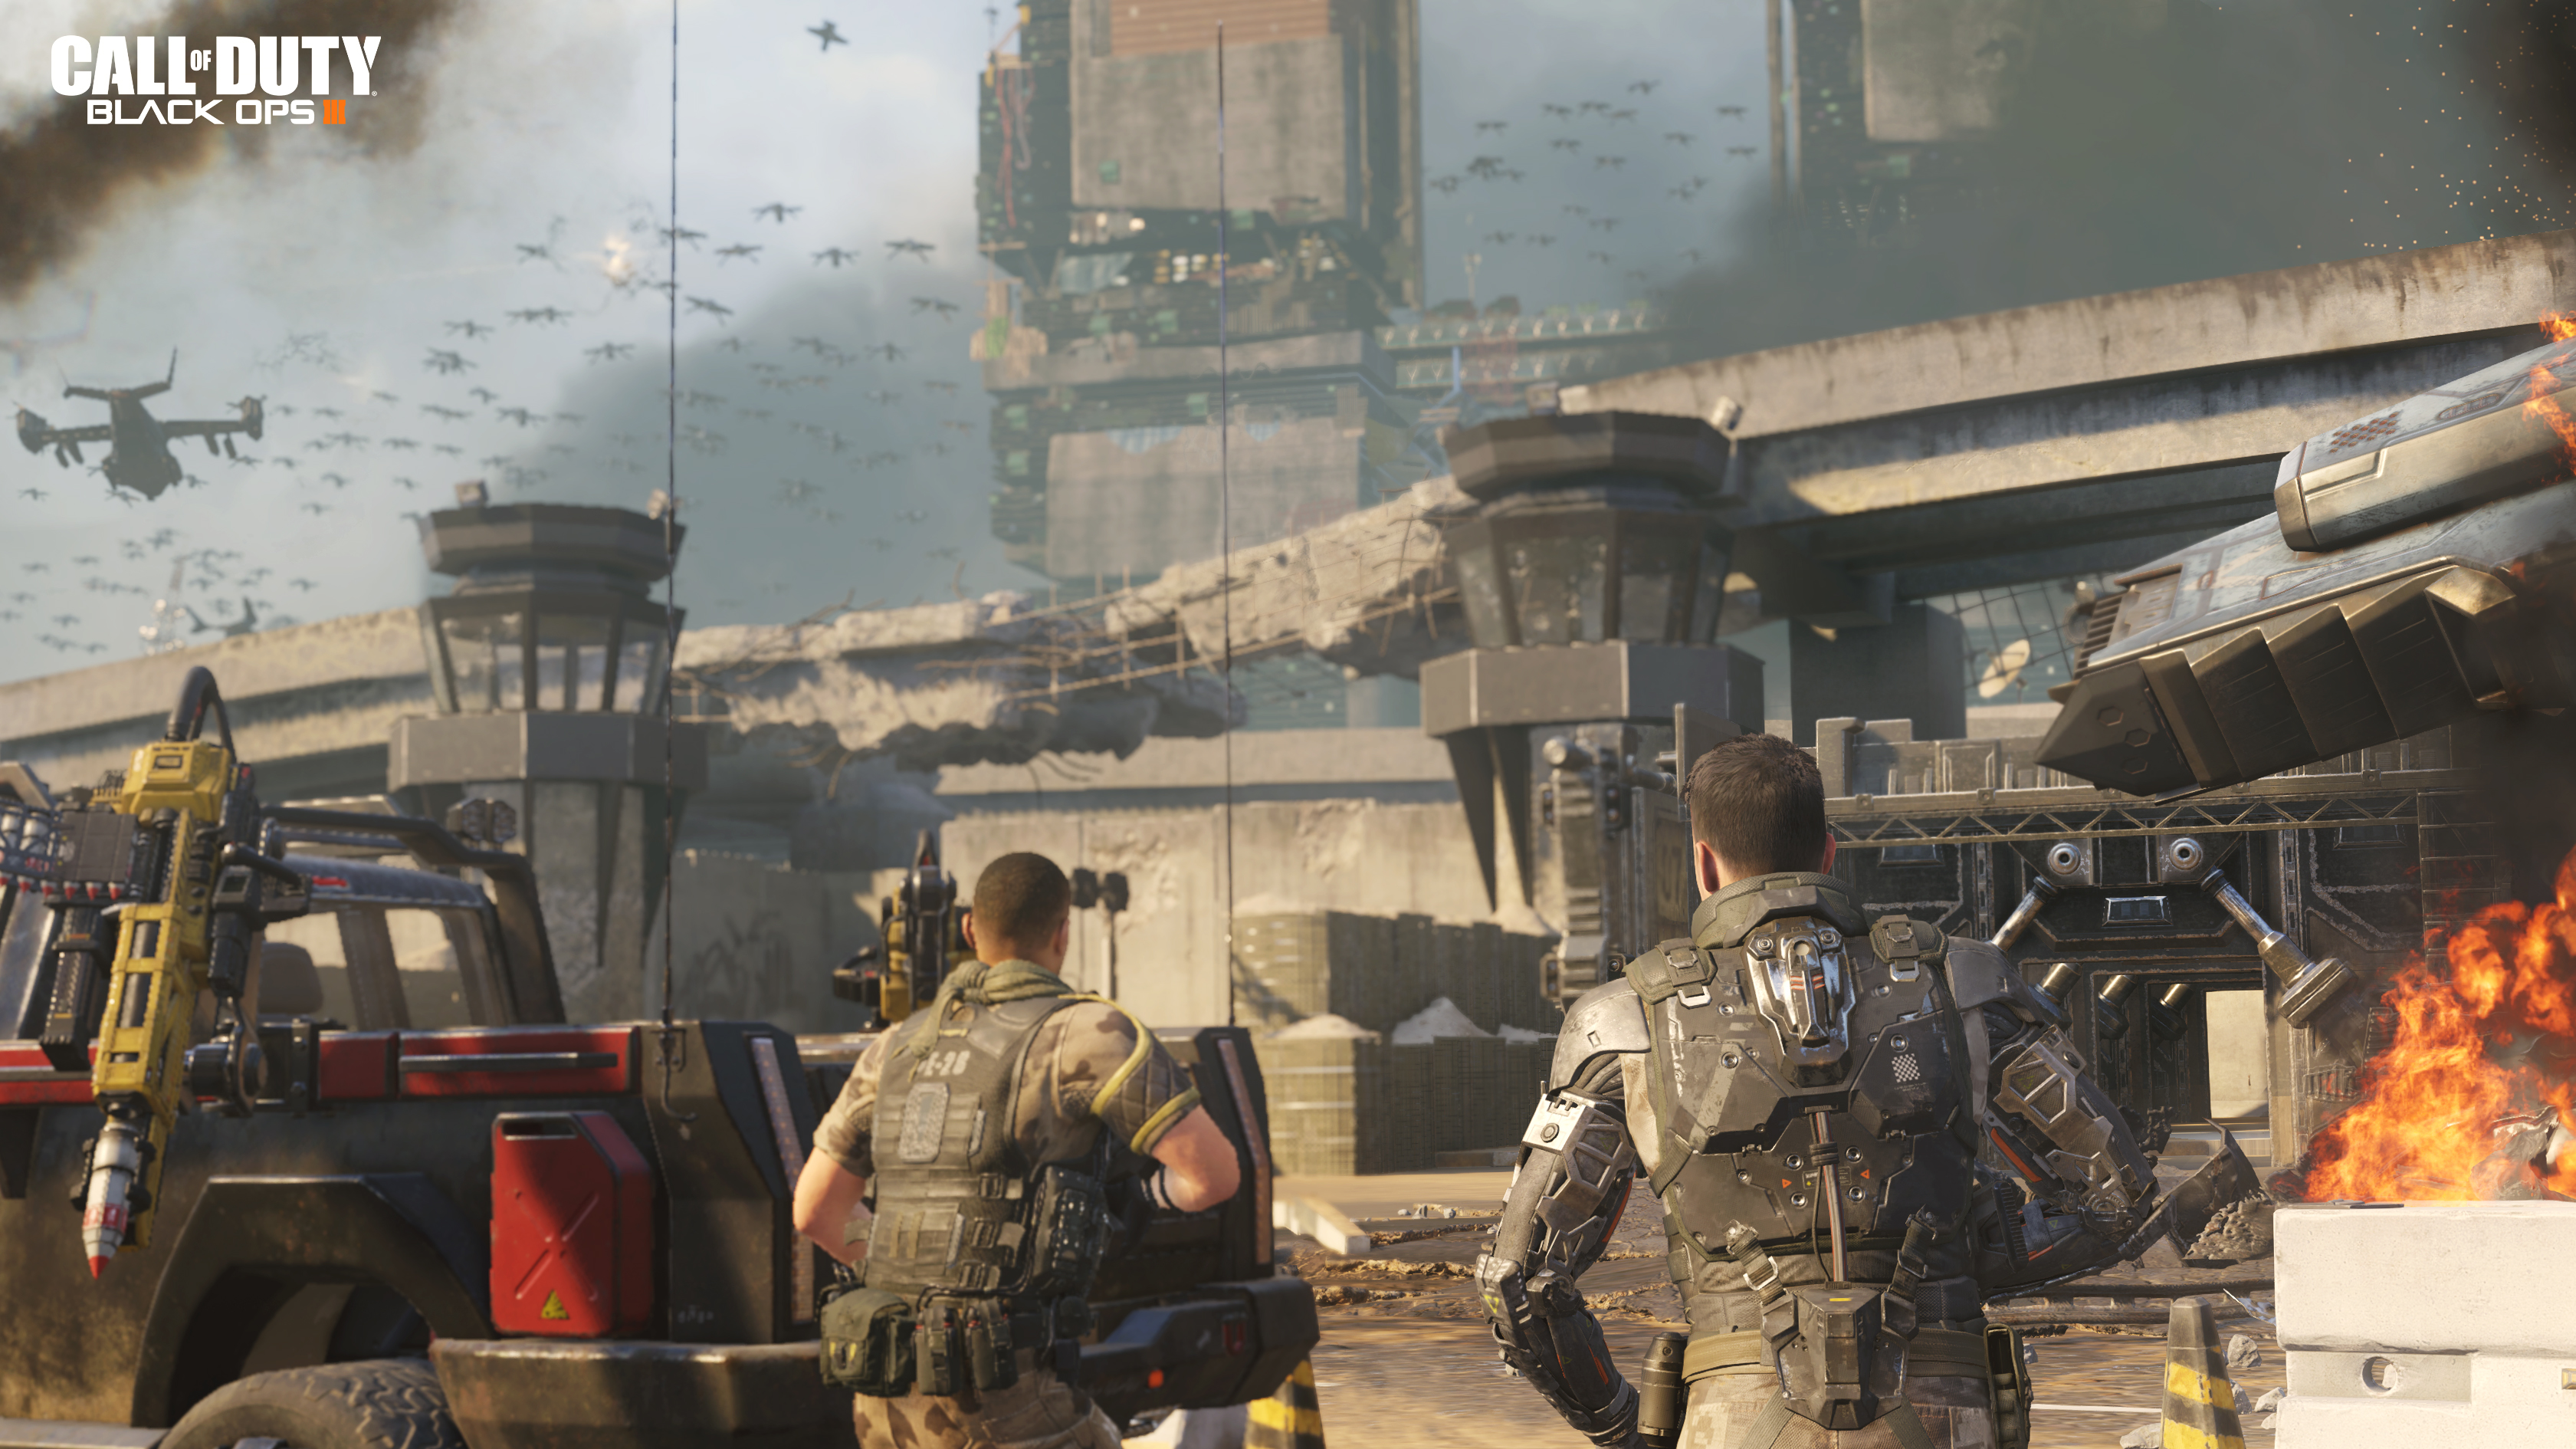 Activision shifts allegiance to Sony on Call of Duty